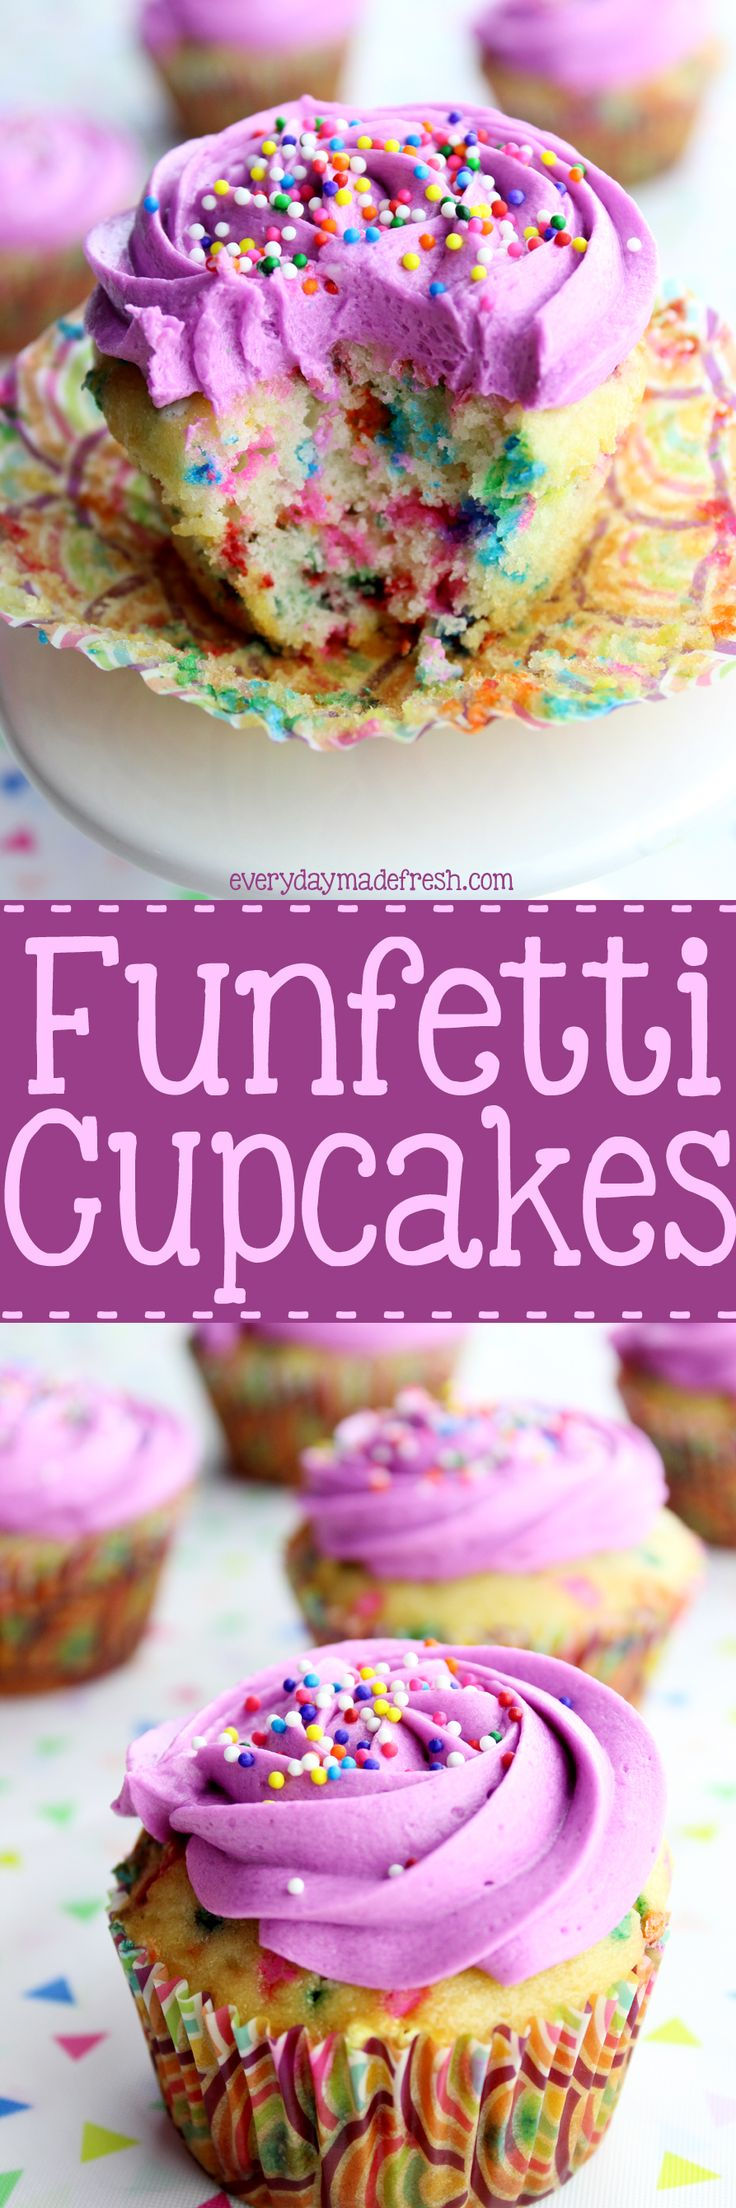 Sprinkles are all the rage, which means these Funfetti Cupcakes will be a hit at your next party! They are simple to make and the best part...they don't require a mixer! | EverydayMadeFresh.com http://www.everydaymadefresh.com/funfetti-cupcakes/